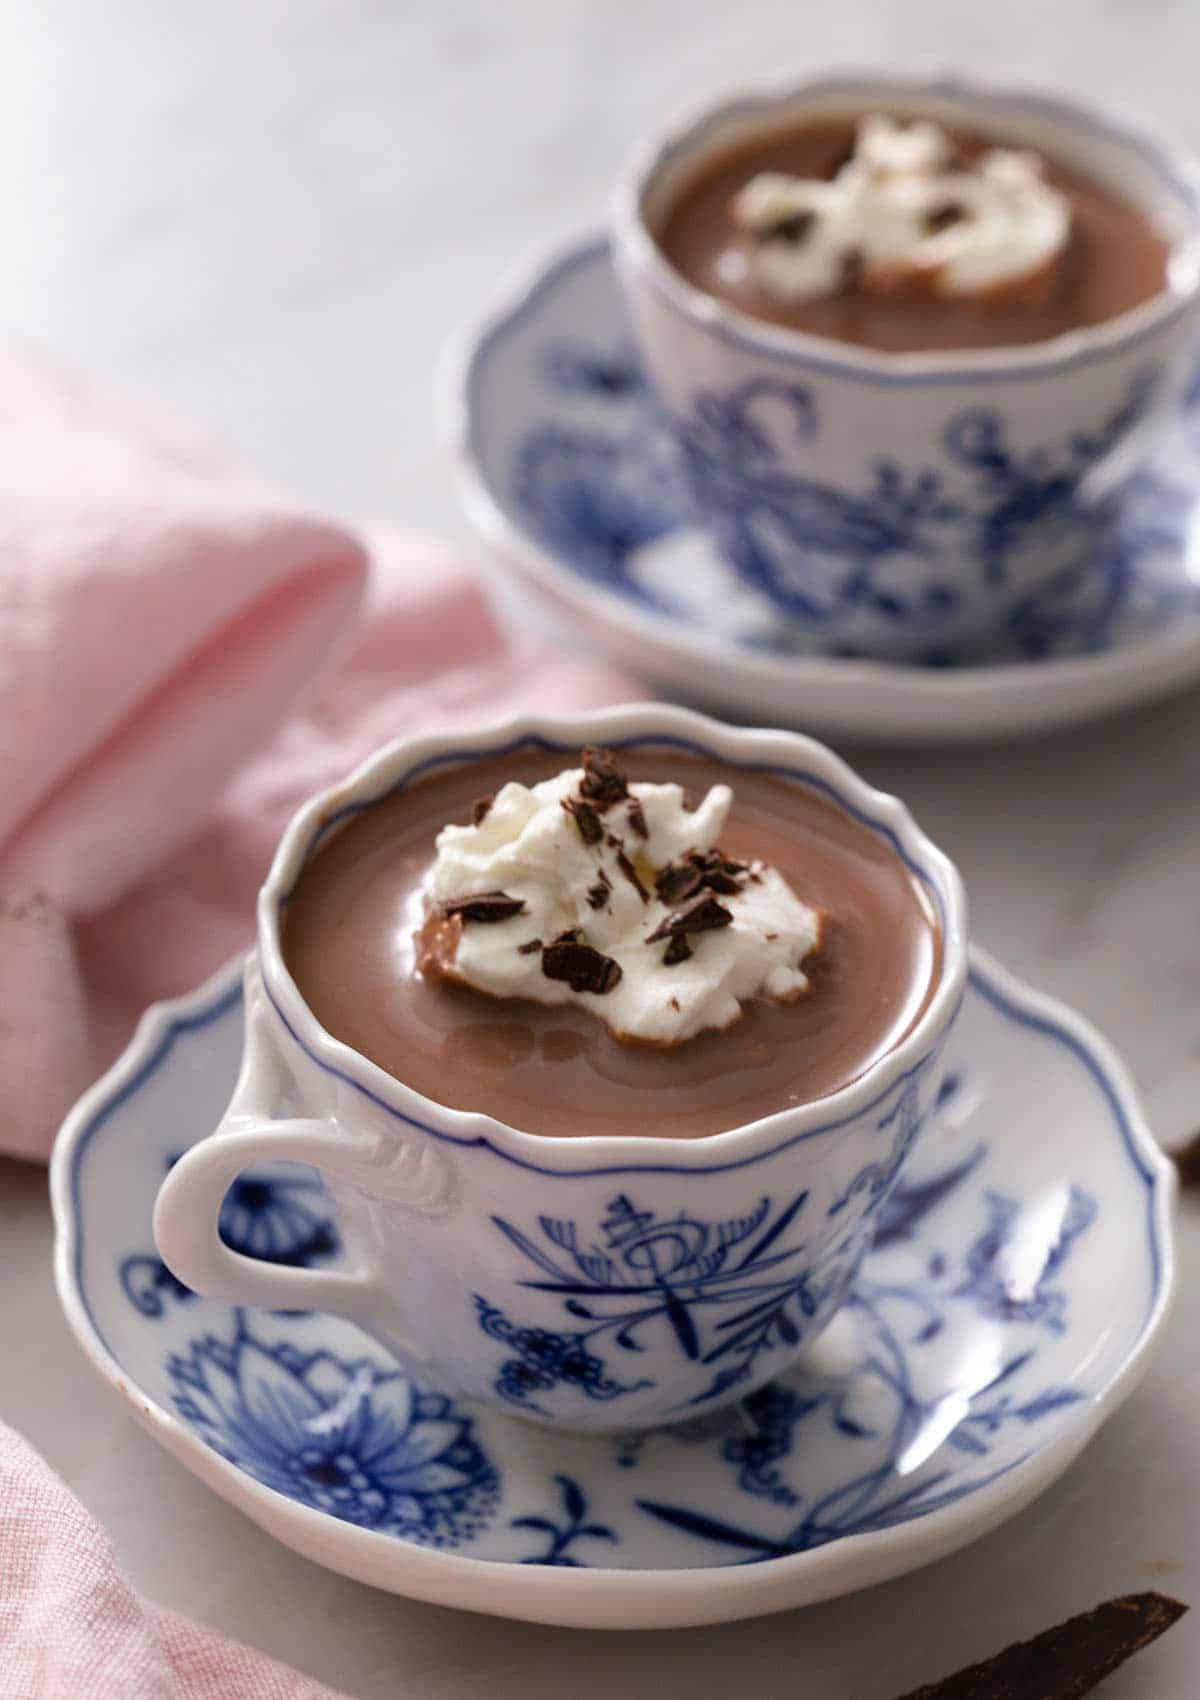 A blue china cup of hot chocolate